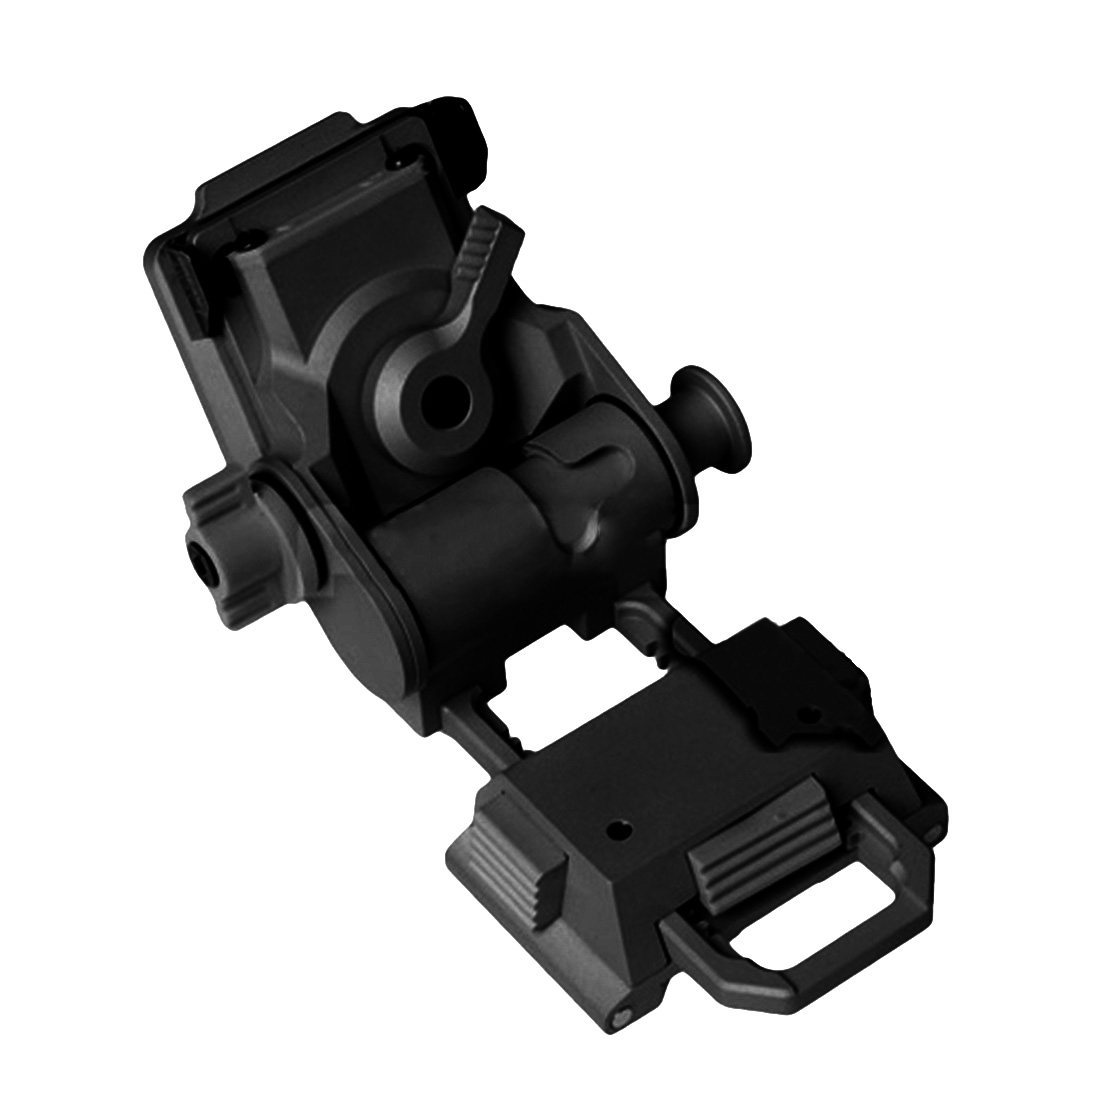 NFSTRIKE Tactical Accessories for FMA L4G24 NVG Mount CNC Military Tactical Accessories Replacement fma l4g24 nvg mount de bk 100% plastic tactical helmet mount accessories tb1012 free shipping